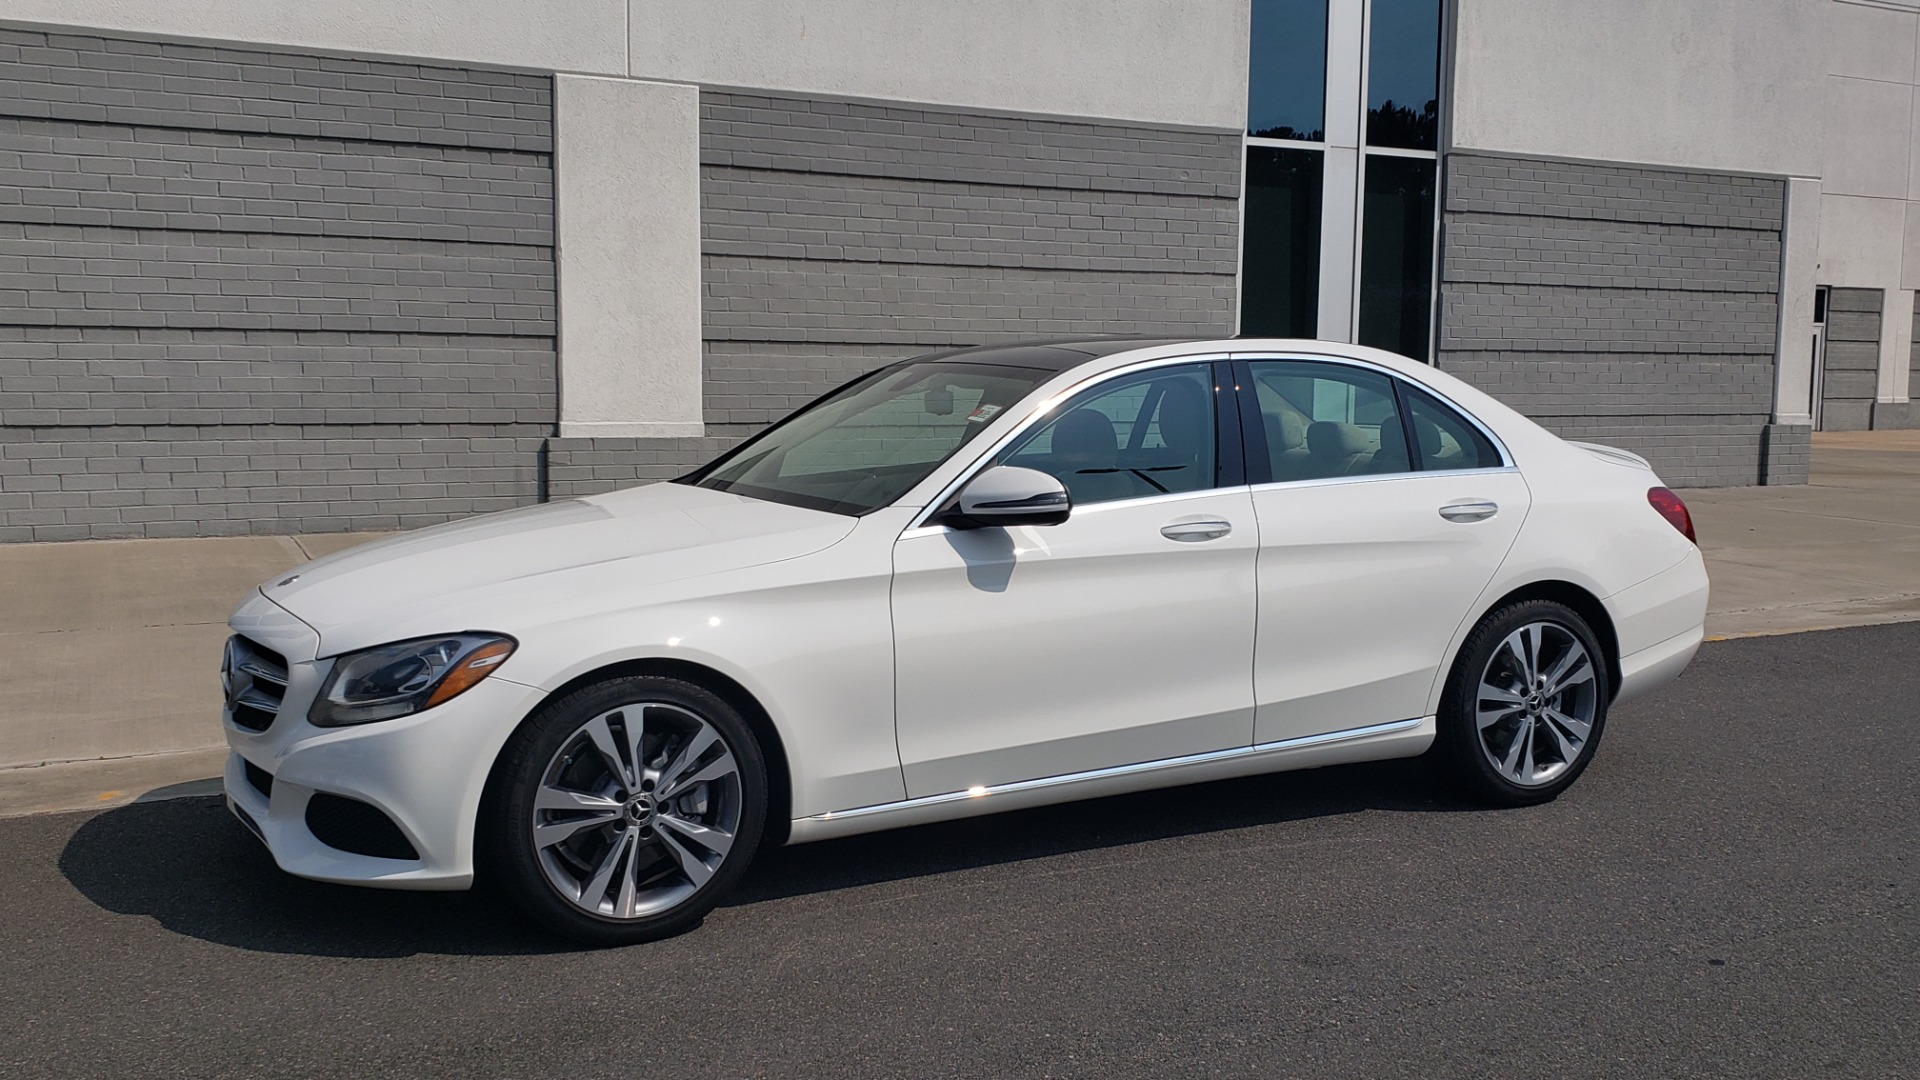 Used 2018 Mercedes-Benz C-CLASS C 300 PREMIUM / KEYLESS-GO / APPLE / PANO-ROOF / REARVIEW for sale $28,295 at Formula Imports in Charlotte NC 28227 4